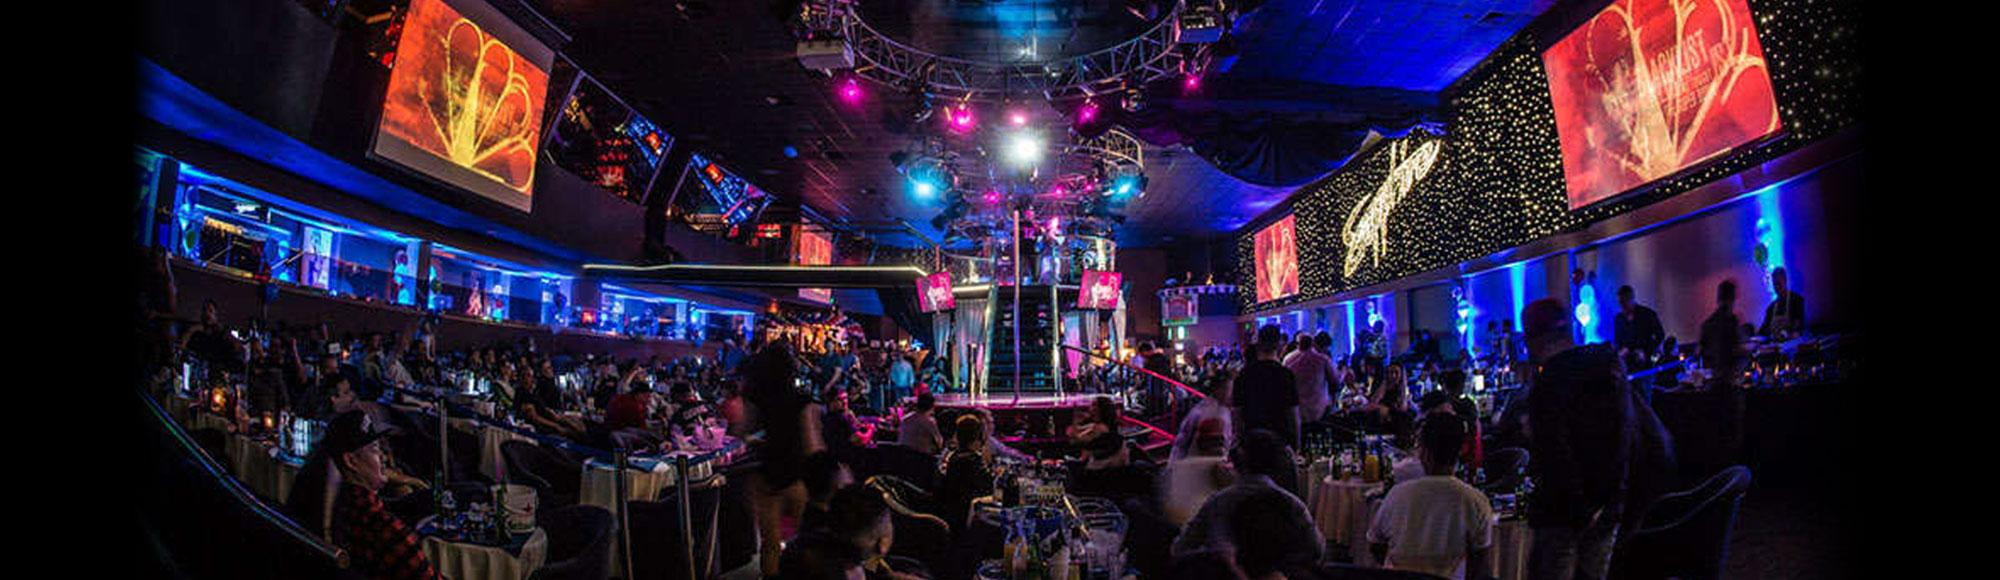 gentlemans club las vegas